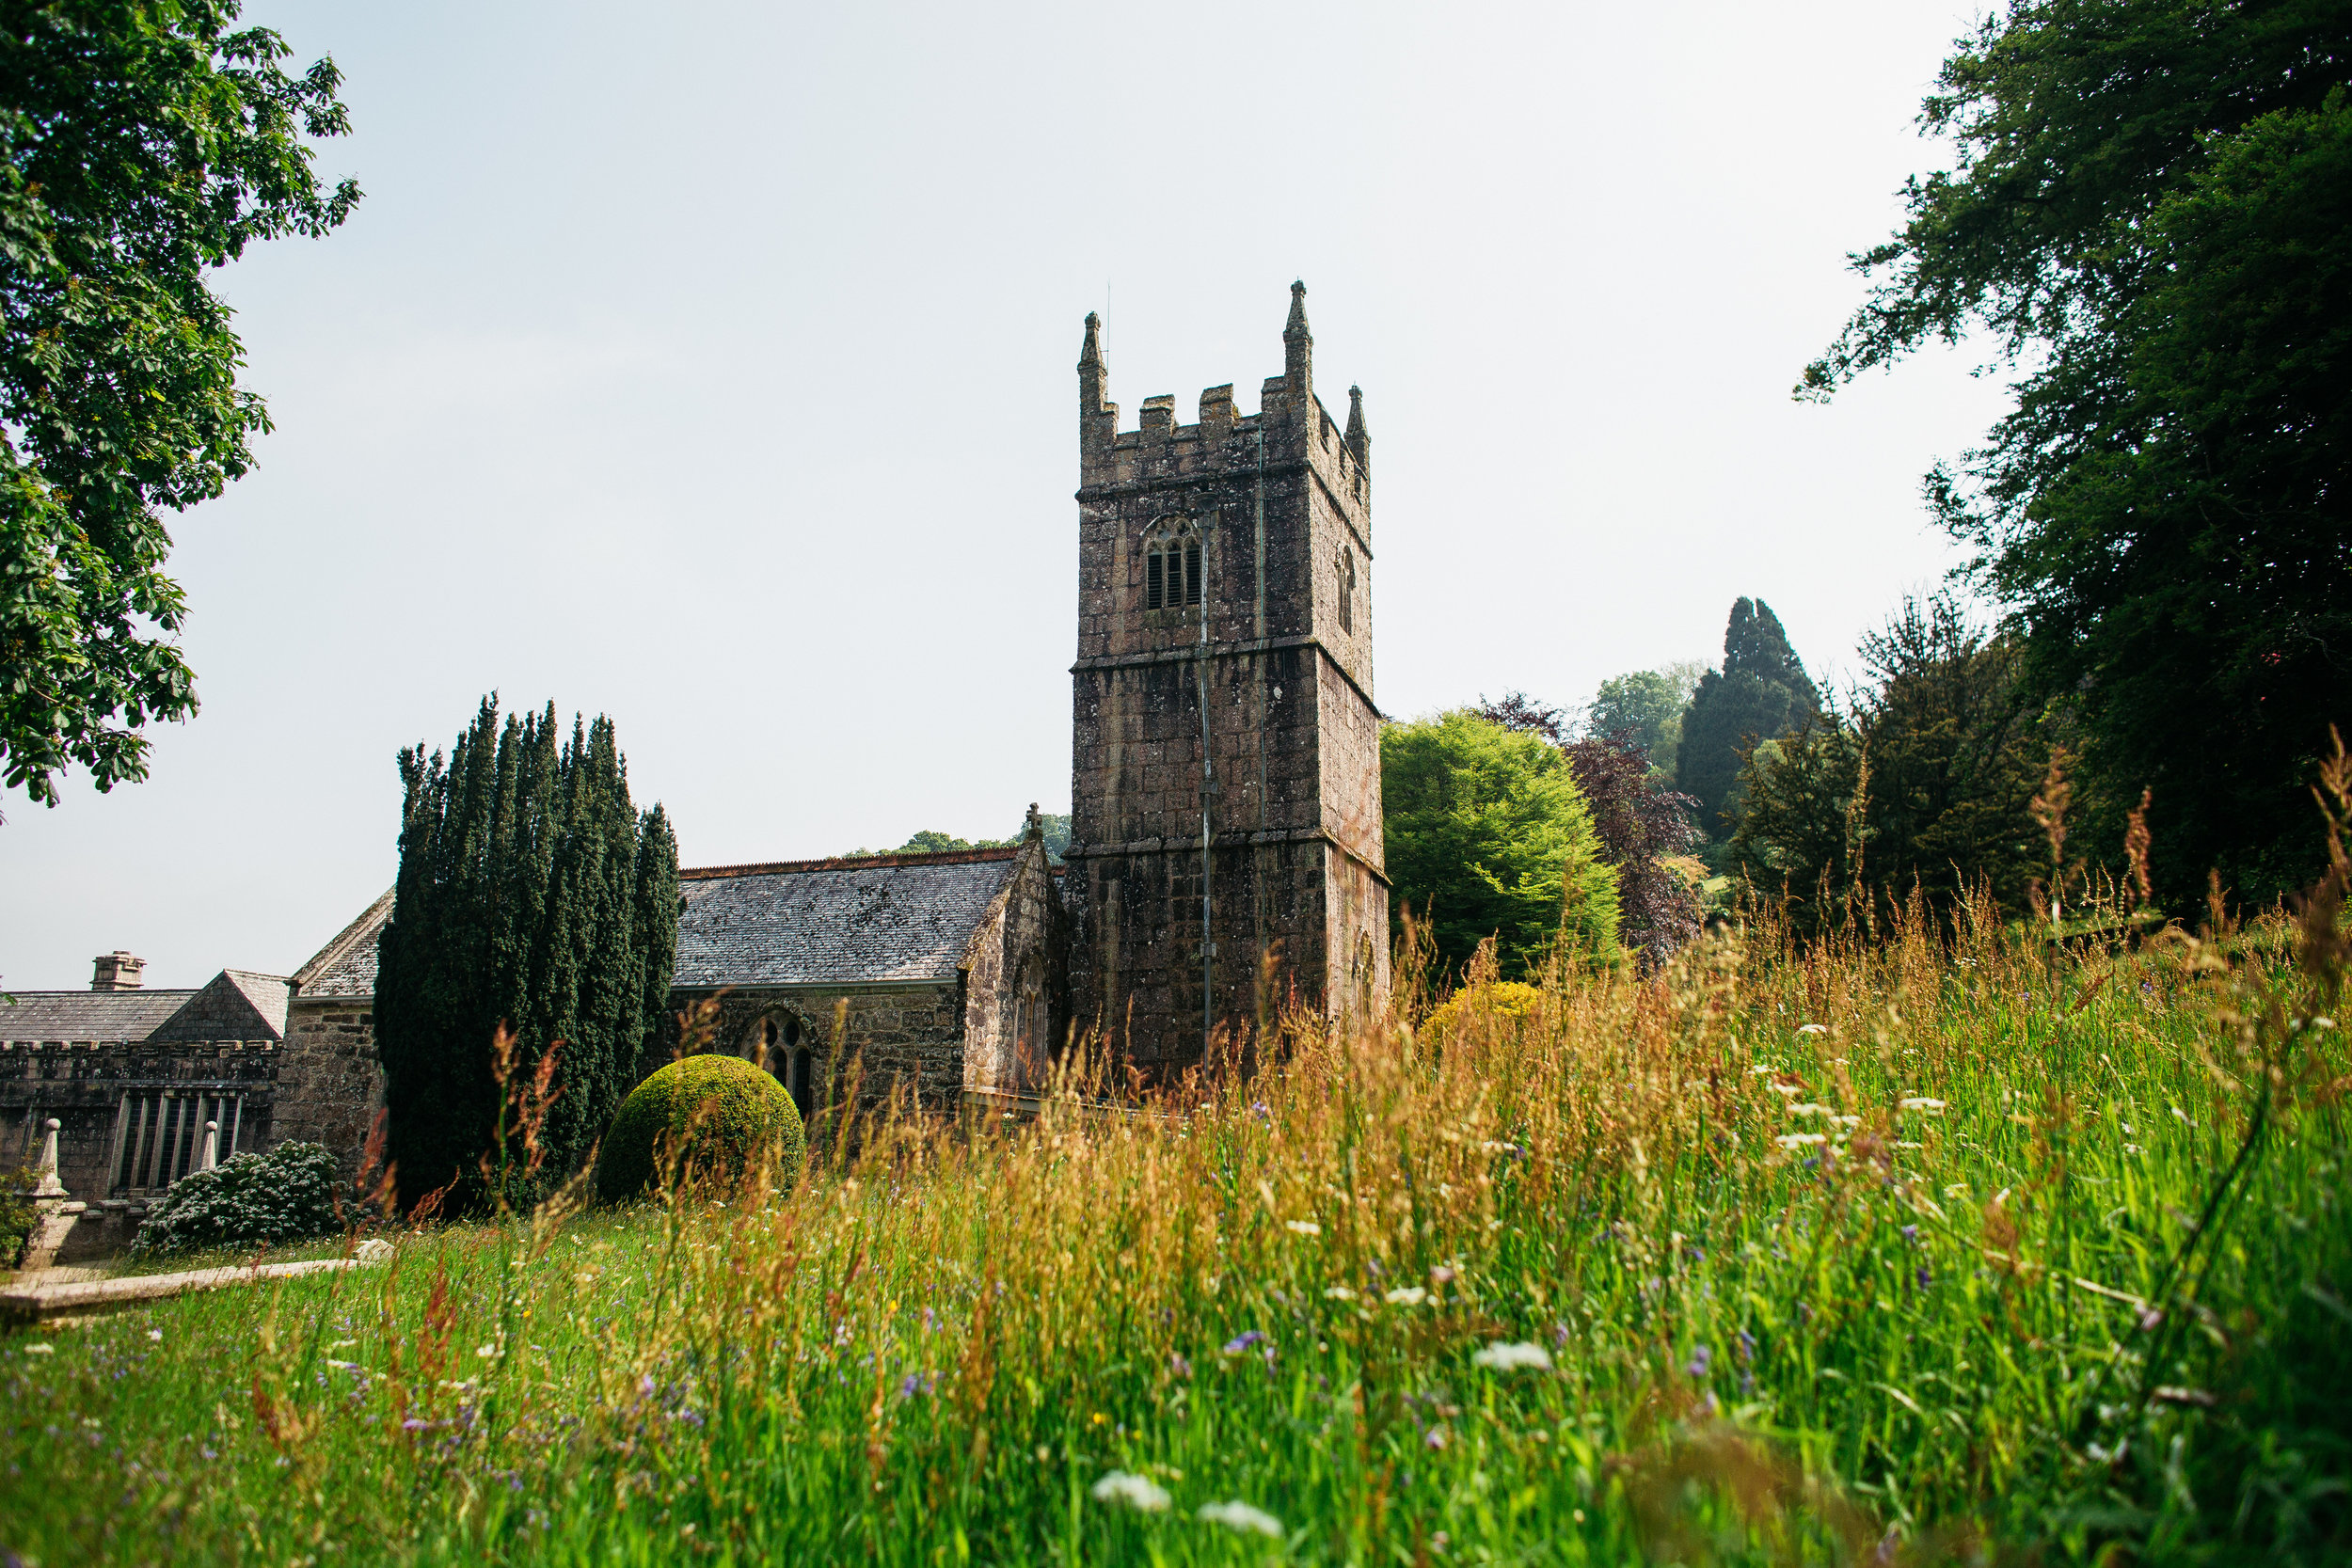 St Hydroc's Church, Landhydrock, Cornwall